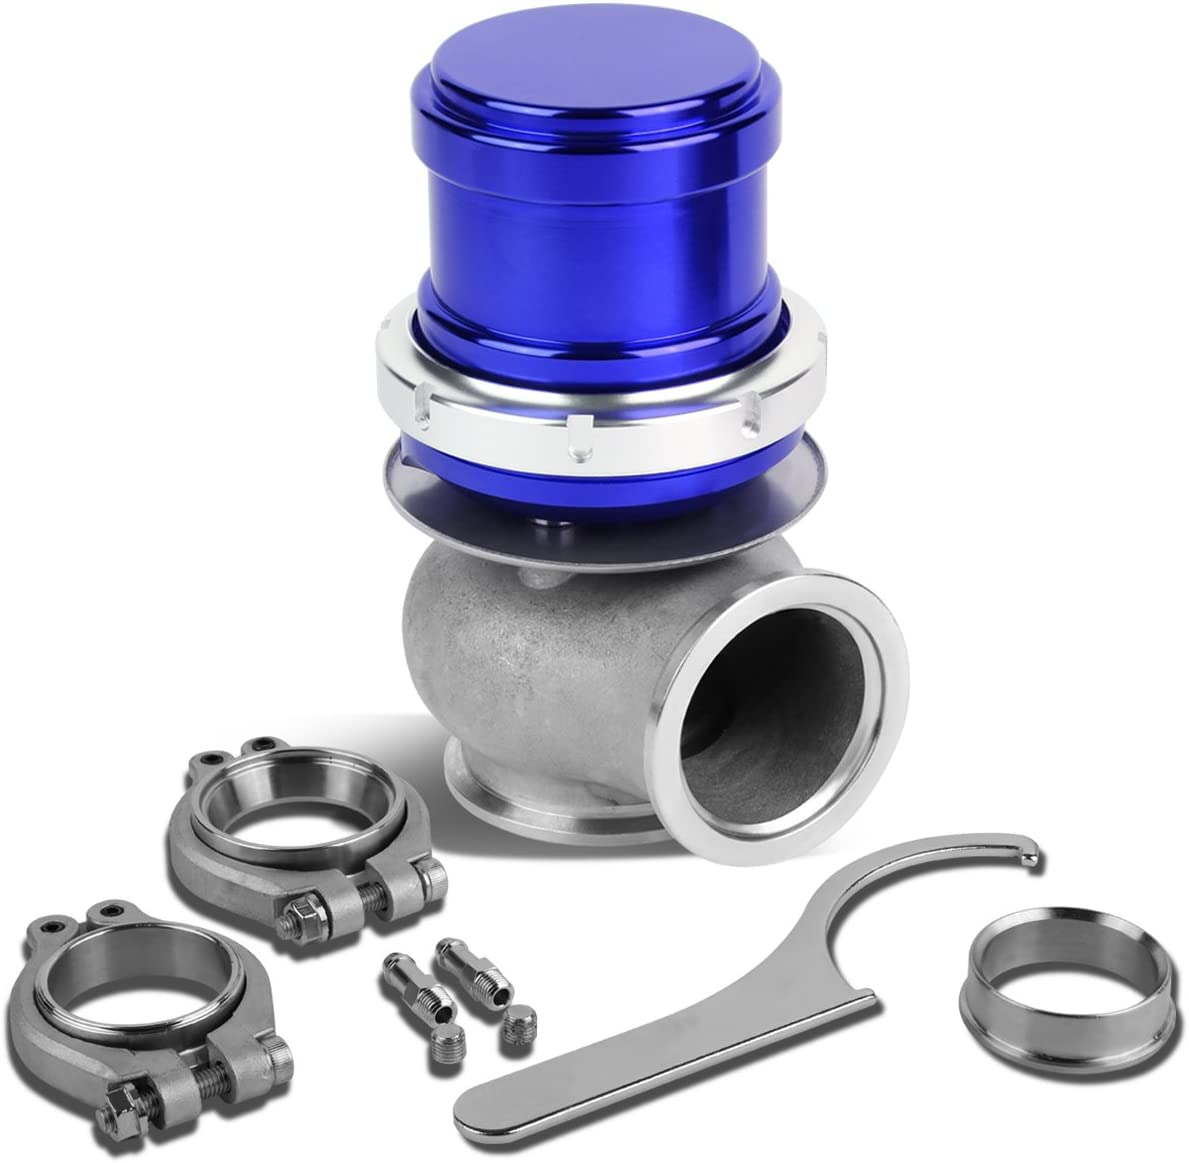 DNA Motoring WG-TS-40MM-T22-BL External Wastegate Turbo New products 1 year warranty world's highest quality popular Manifold